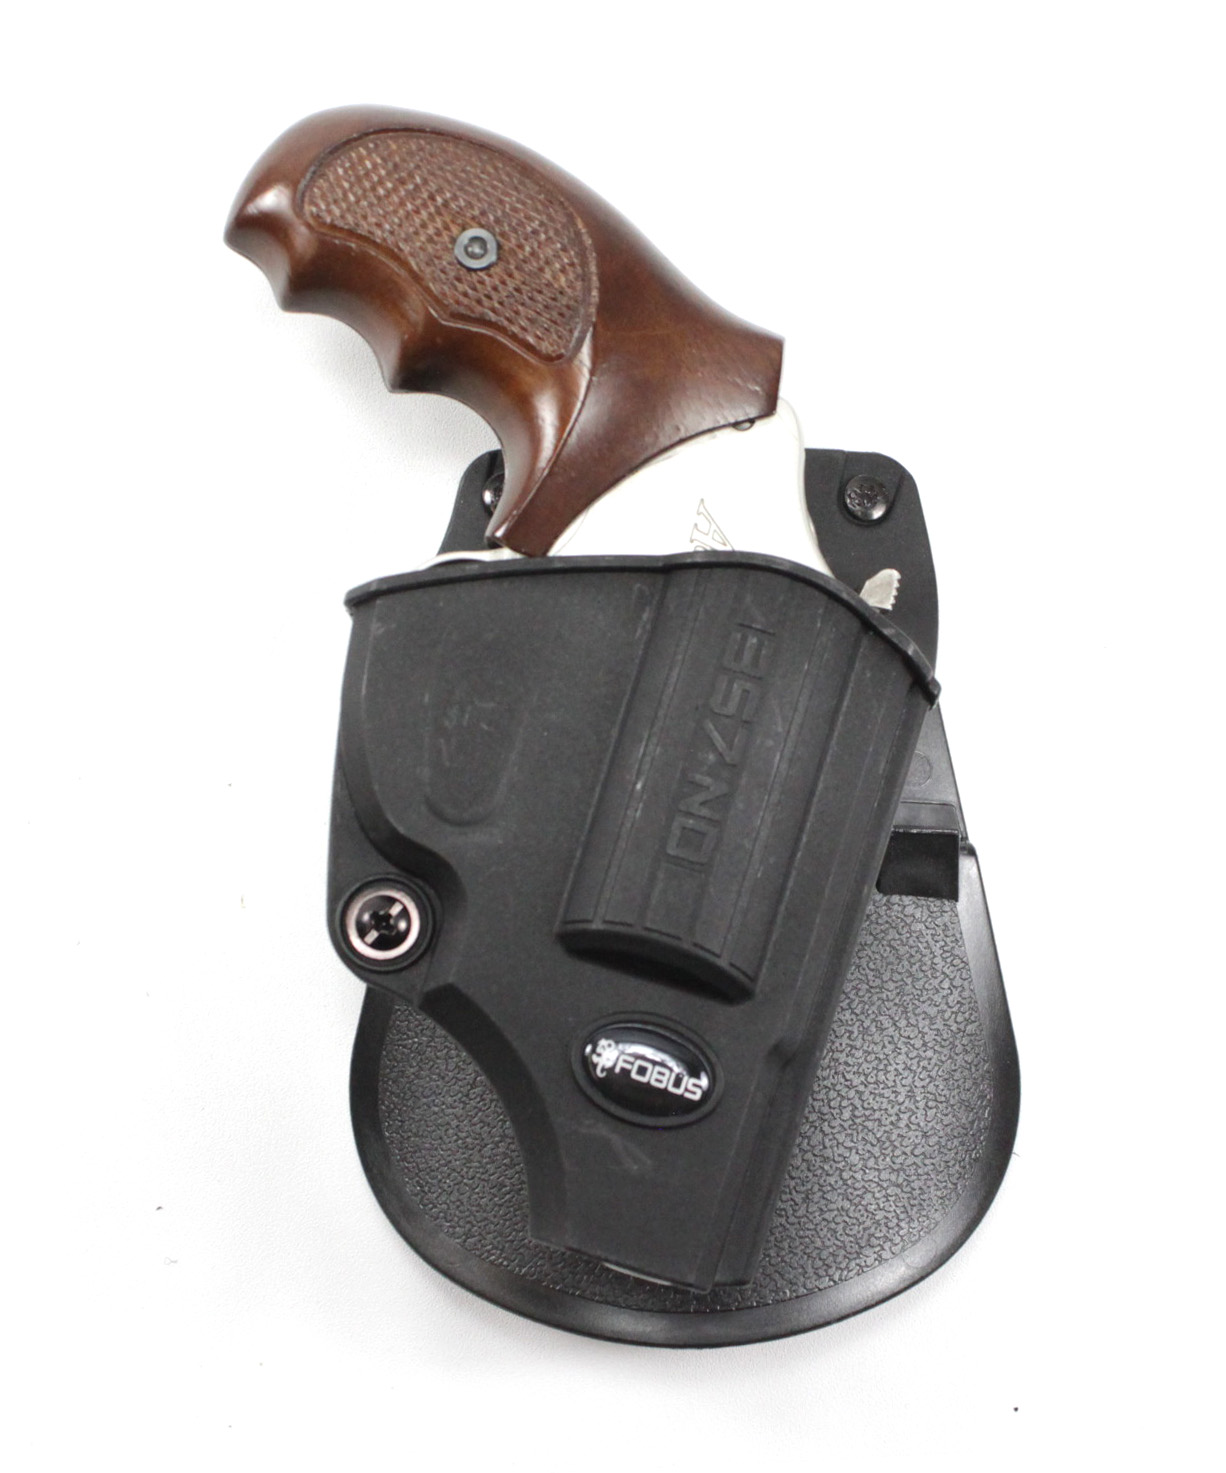 Fobus Paddle Holster Smith & Wesson J-Frame, Charter Arms, Rossi-With  Retention Adjustment Screw